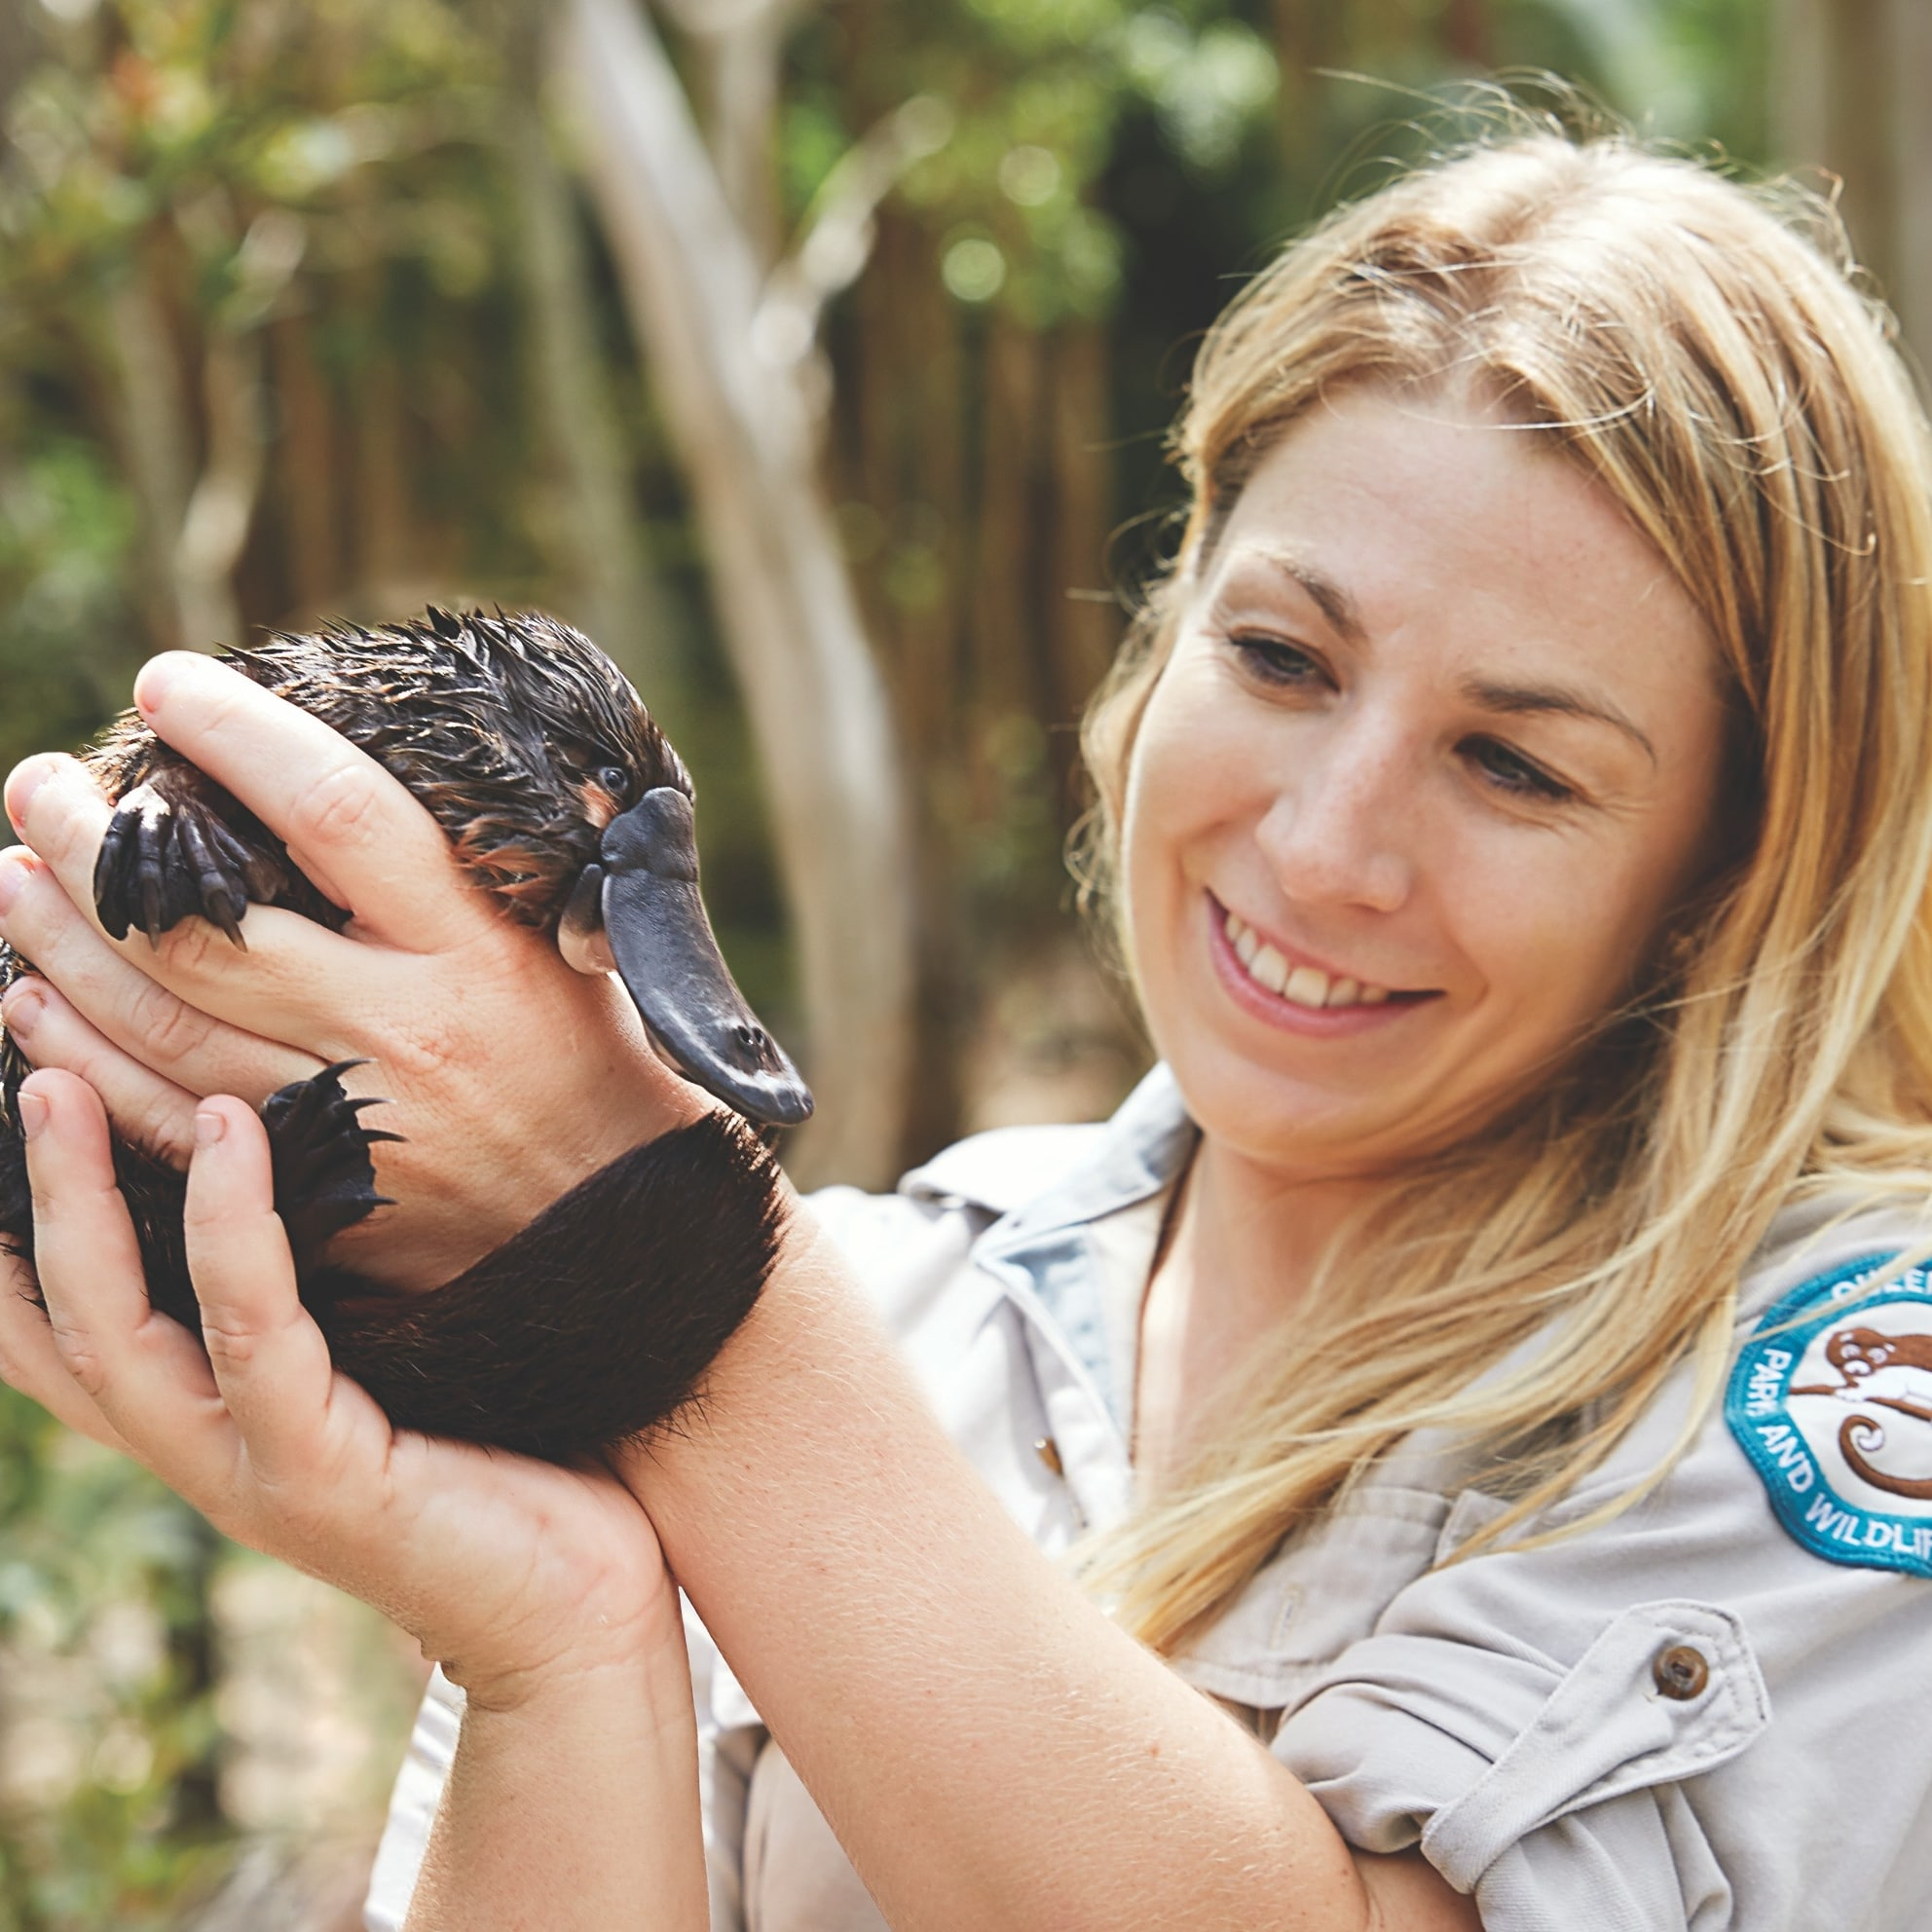 Ranger holding a platypus at David Fleay Wildlife Park on the Gold Coast © Queensland Government